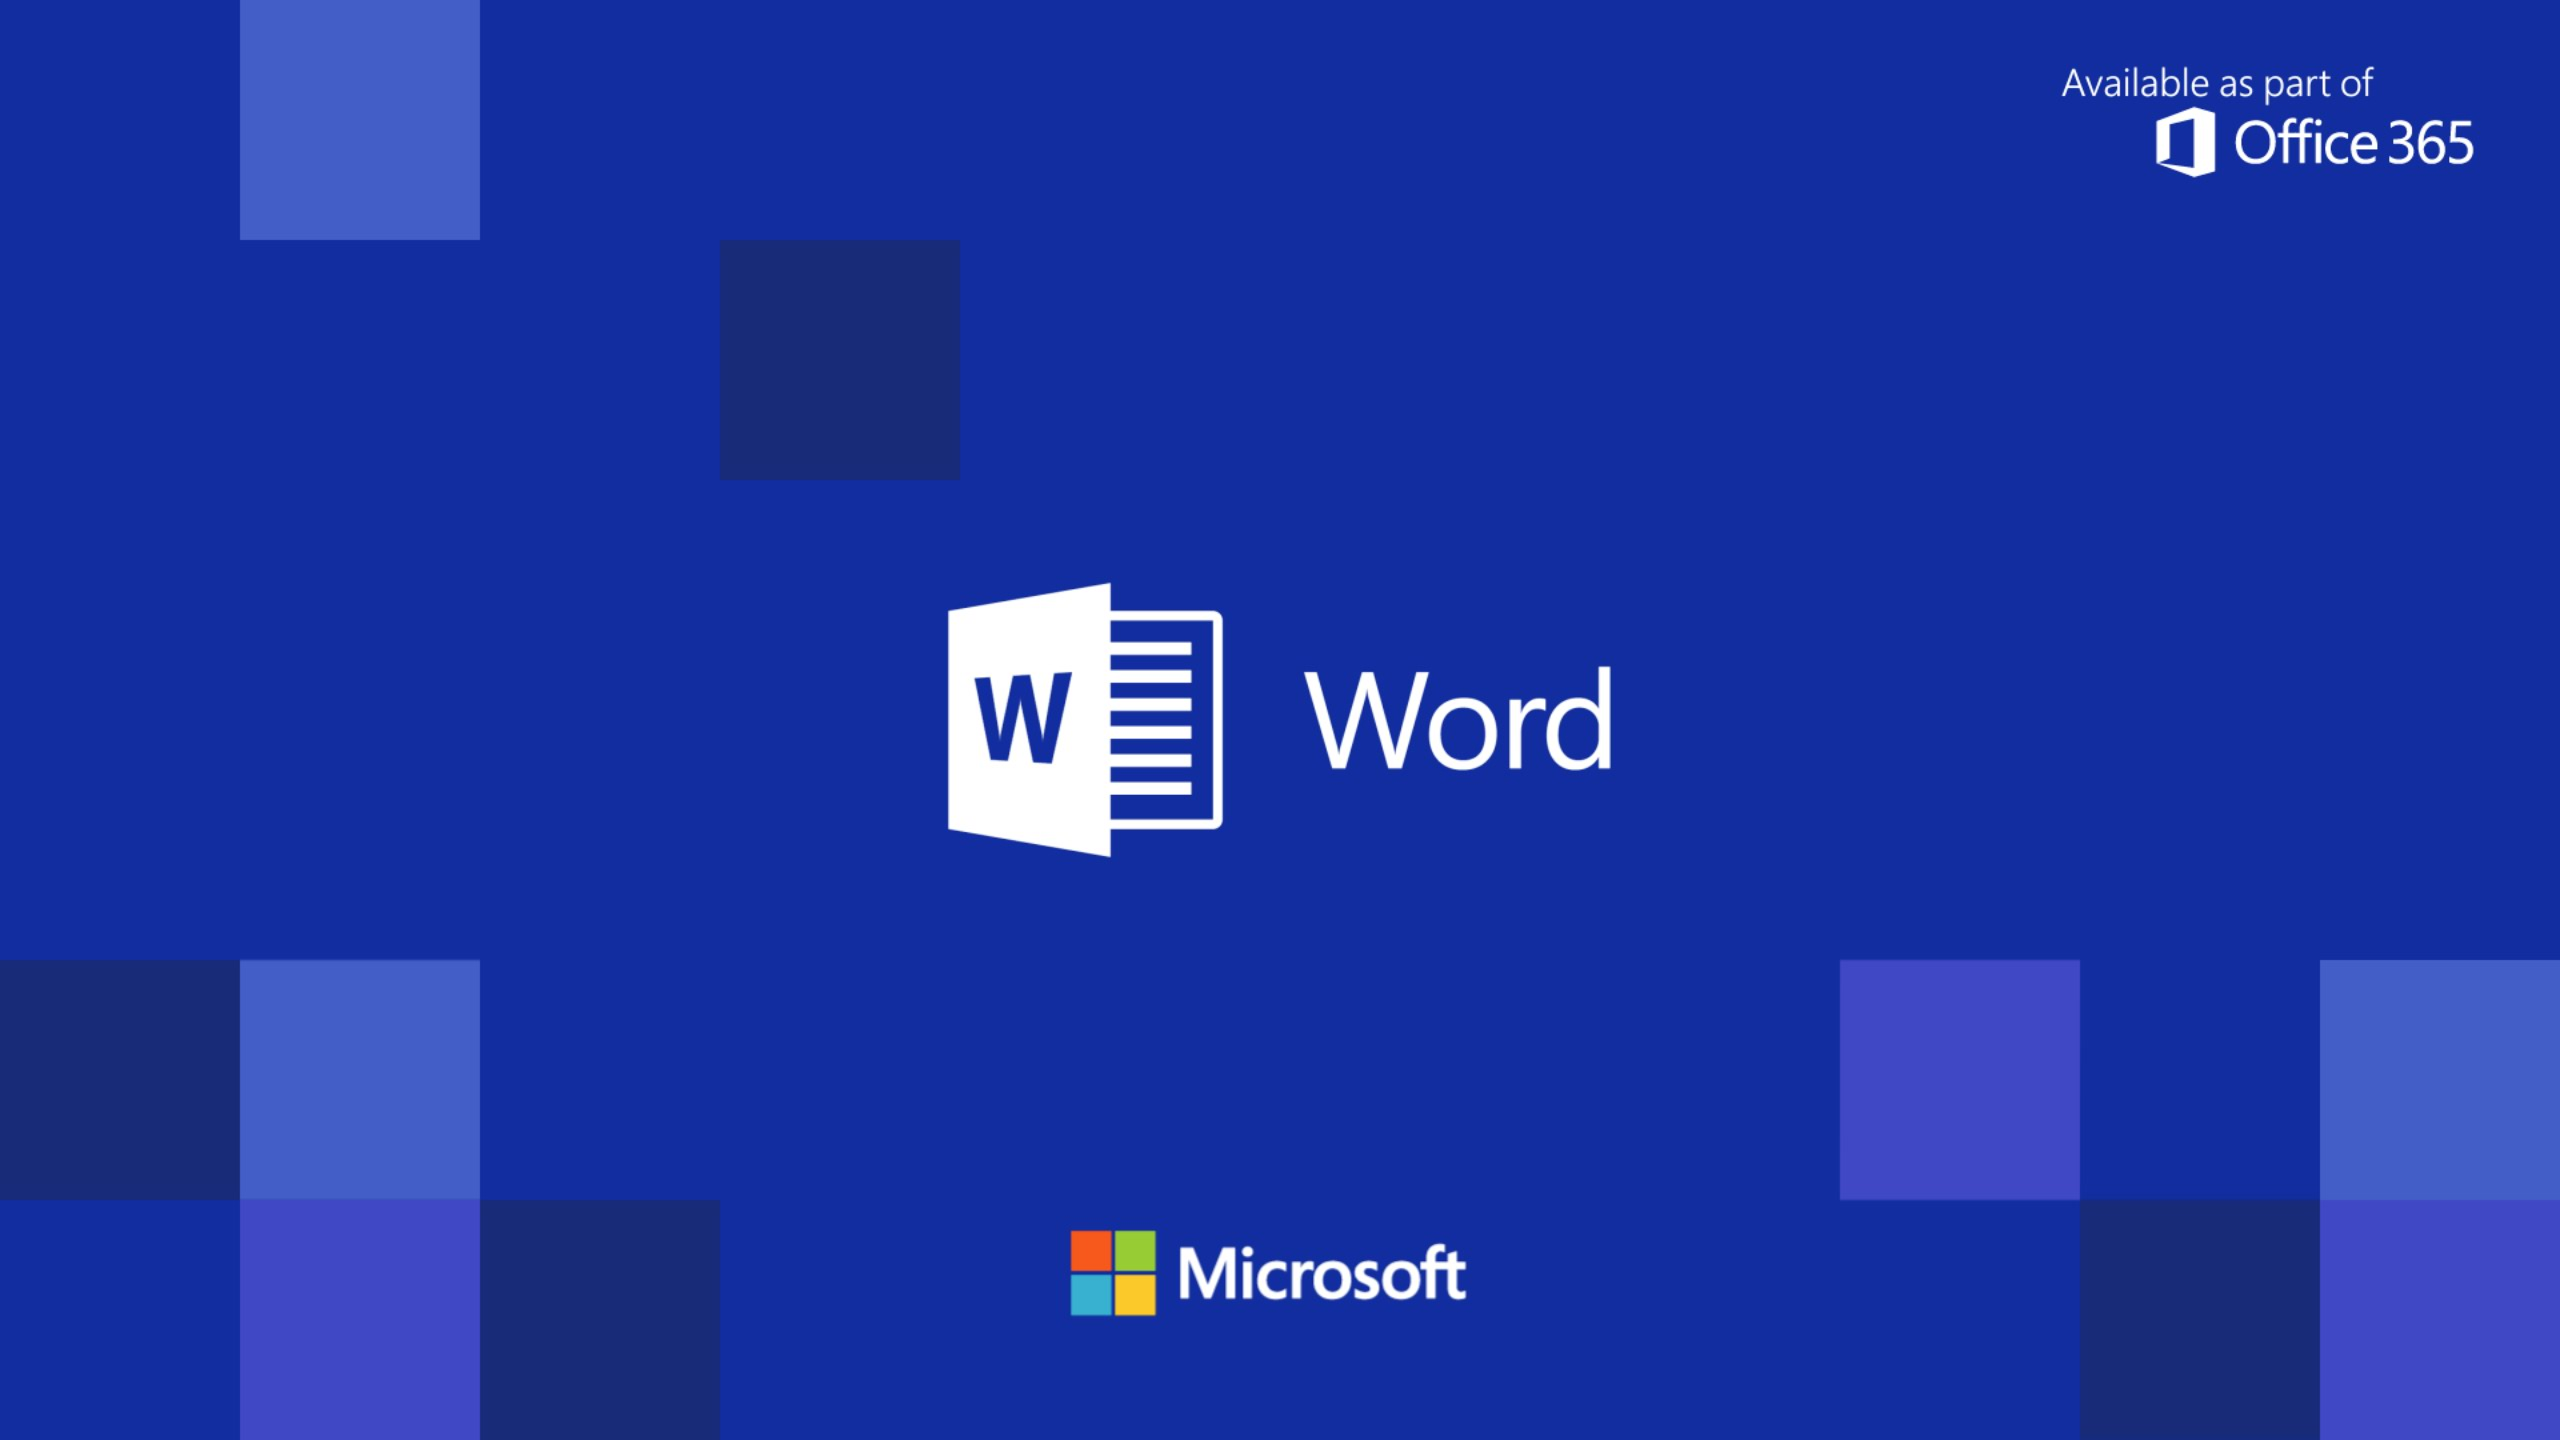 Wallpaper Microsoft Word